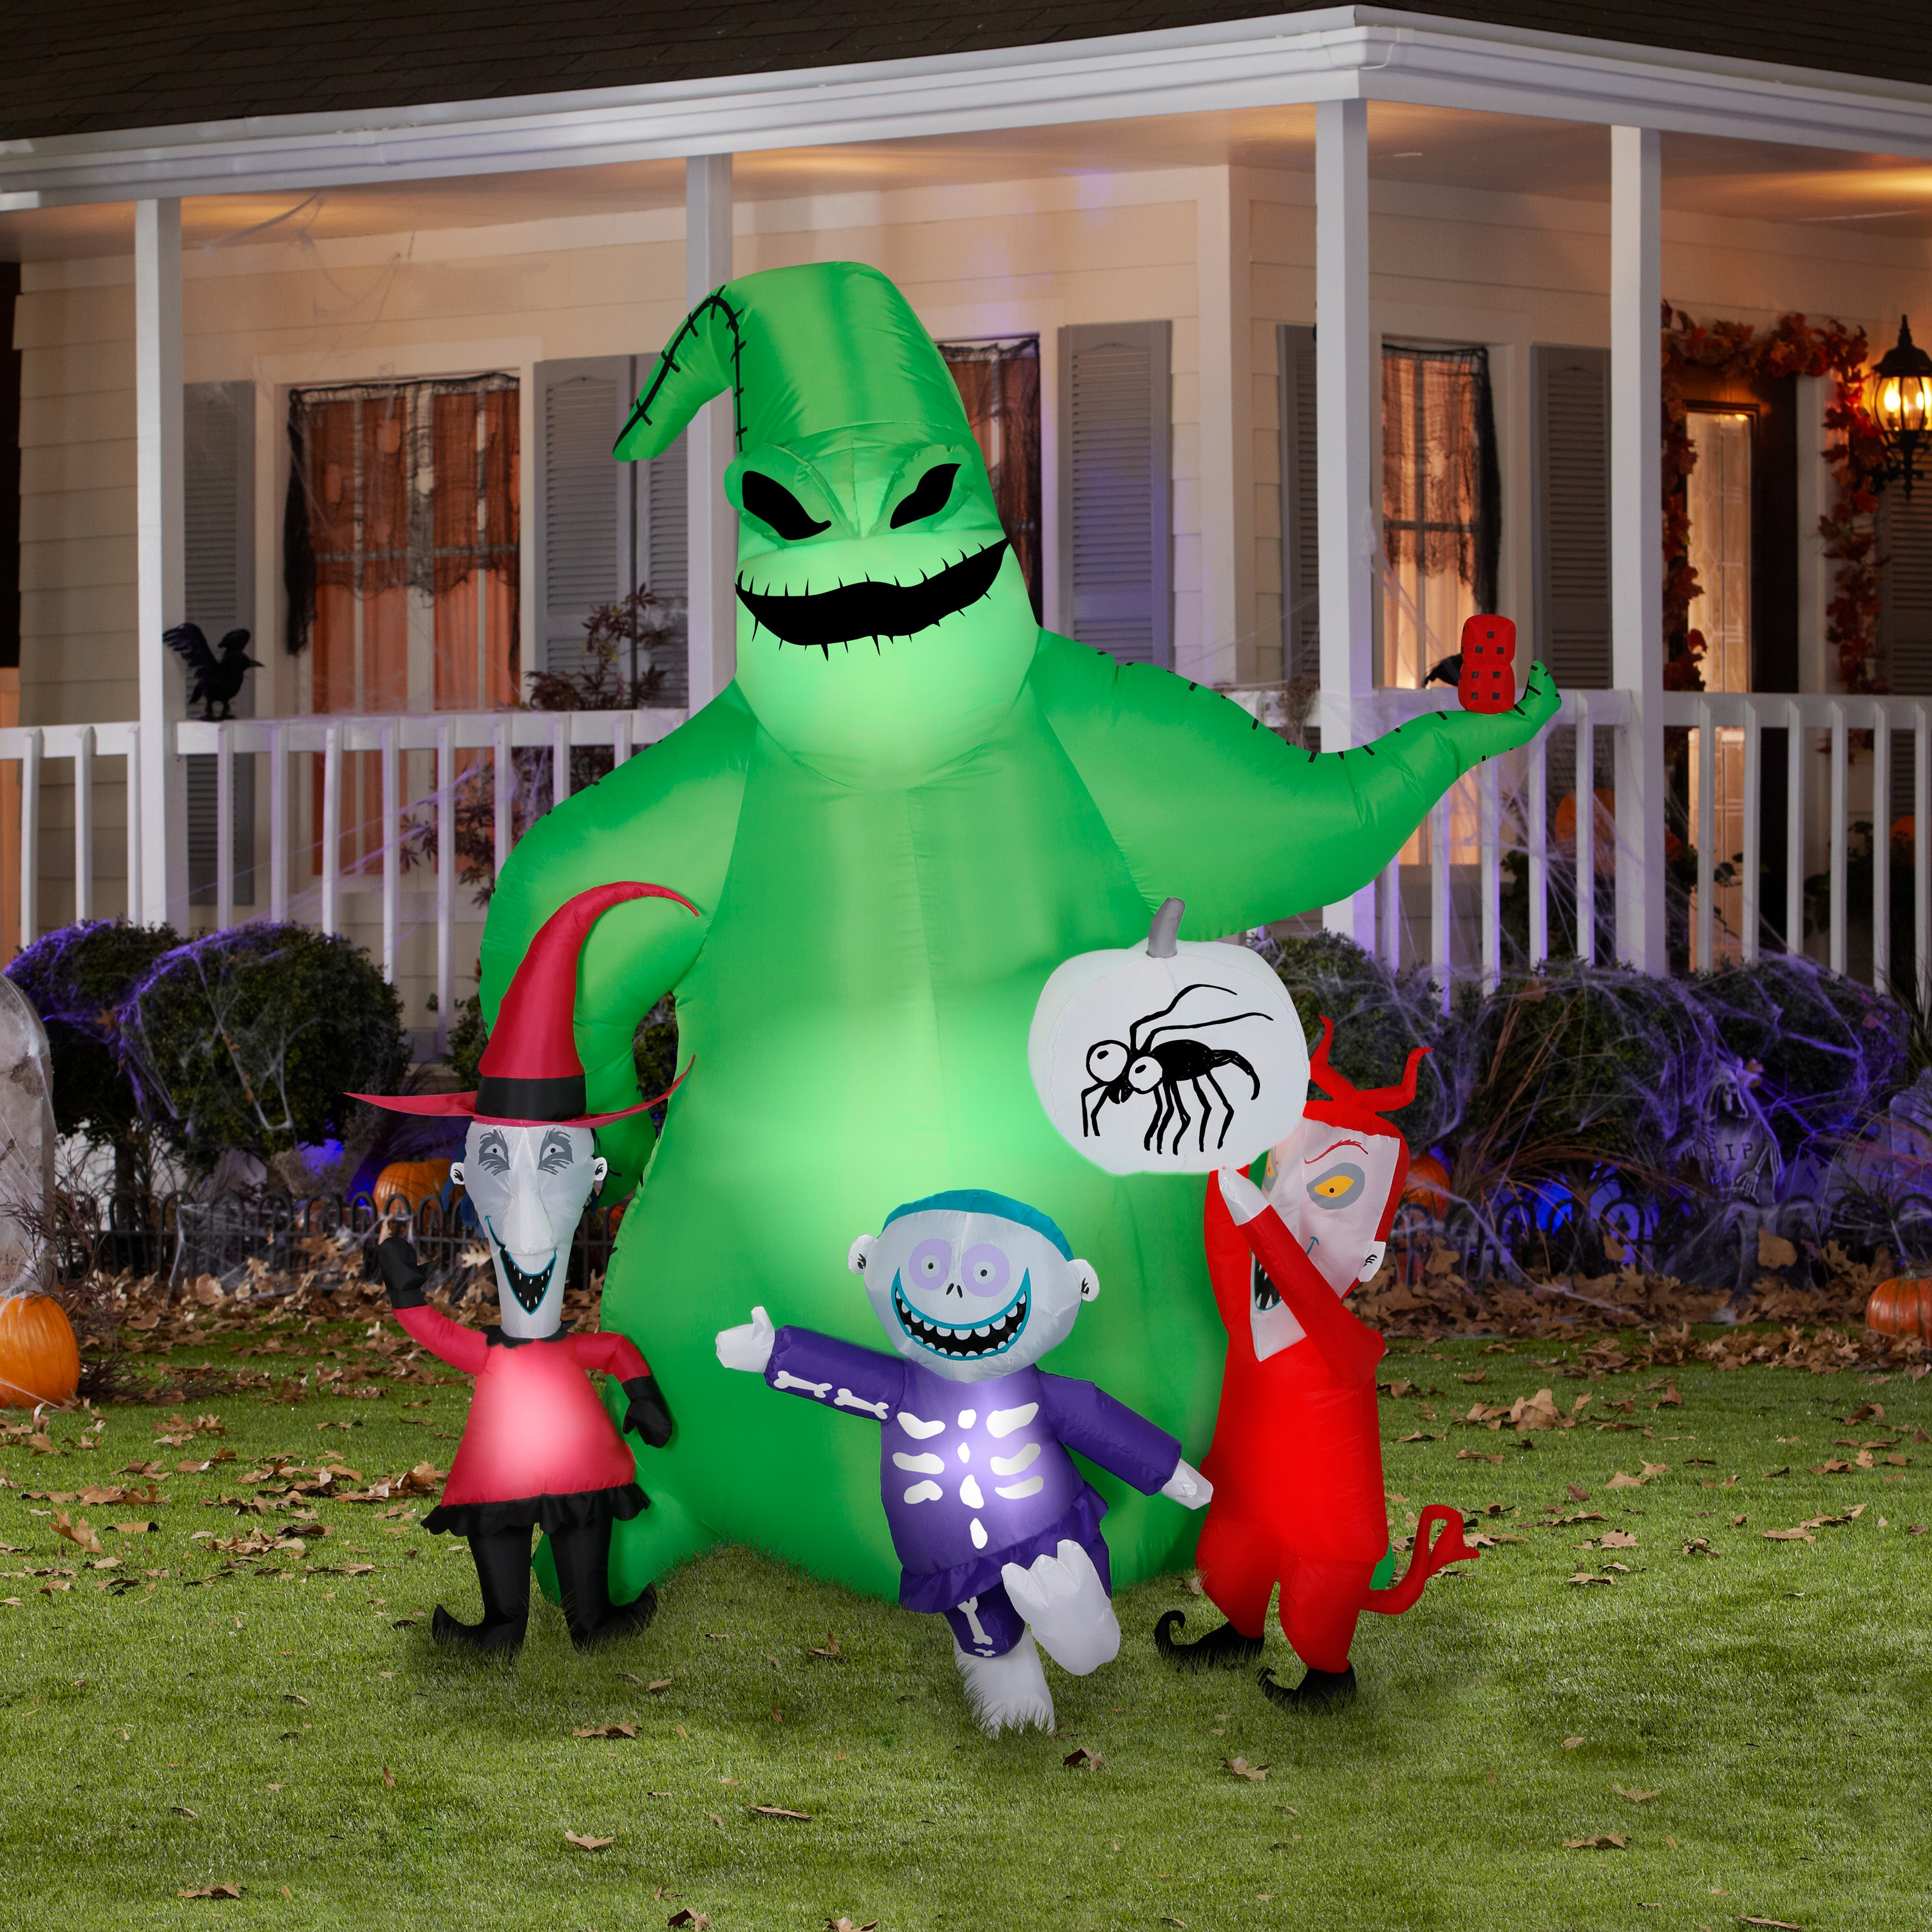 7' Airblown Oogie Boogie w/Creatures Nightmare Before Christmas Disney Scene Halloween Inflatable